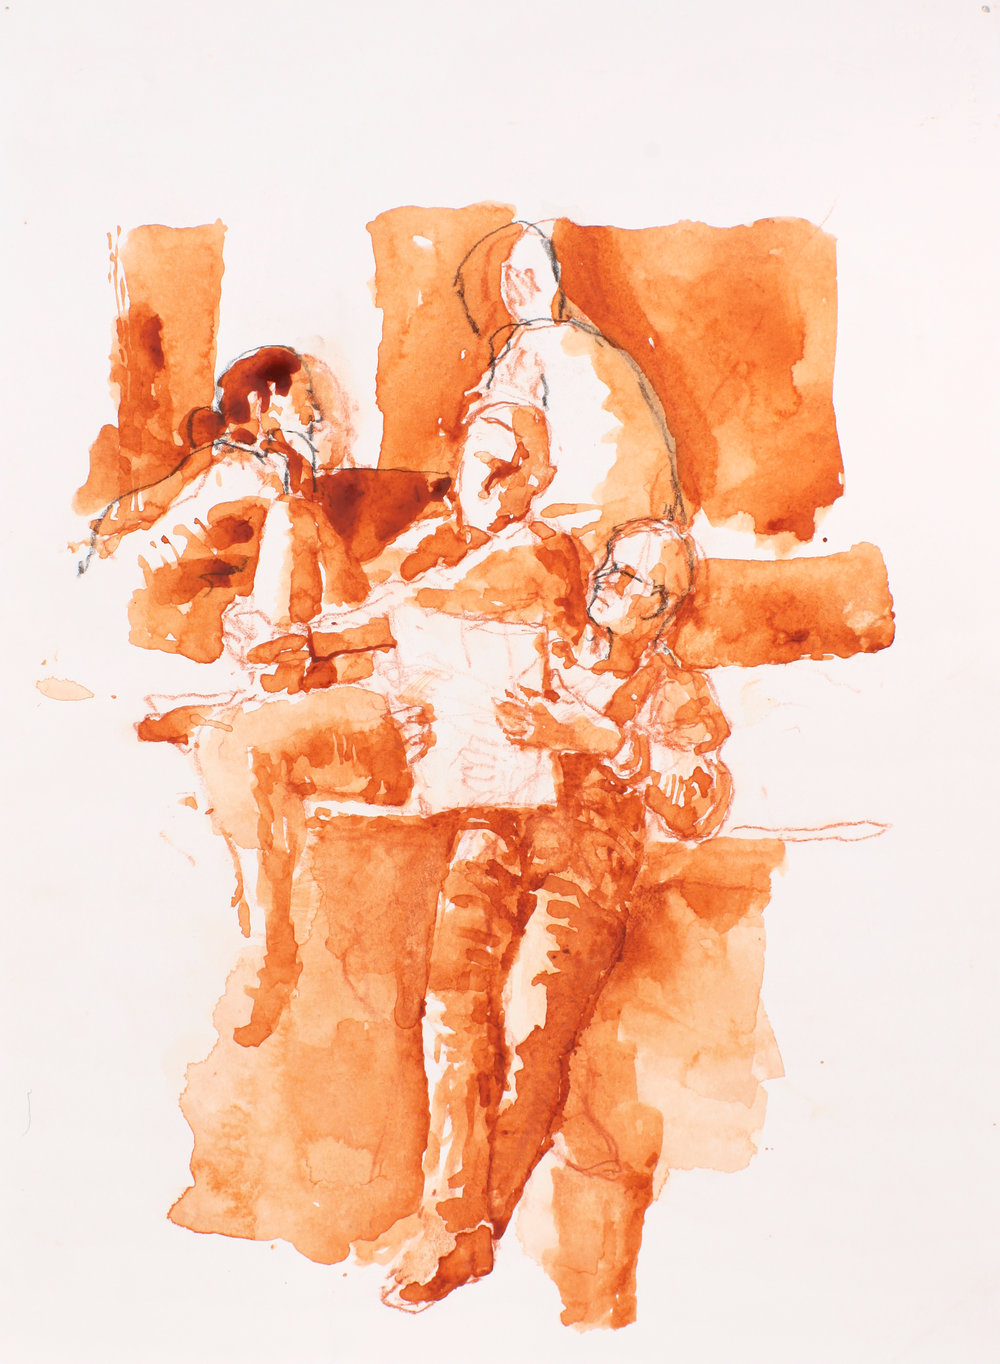 2002_Three_Seated_Figures_Reading_watercolour_and_red_conte_on_paper_15x11in_WPF211.jpg